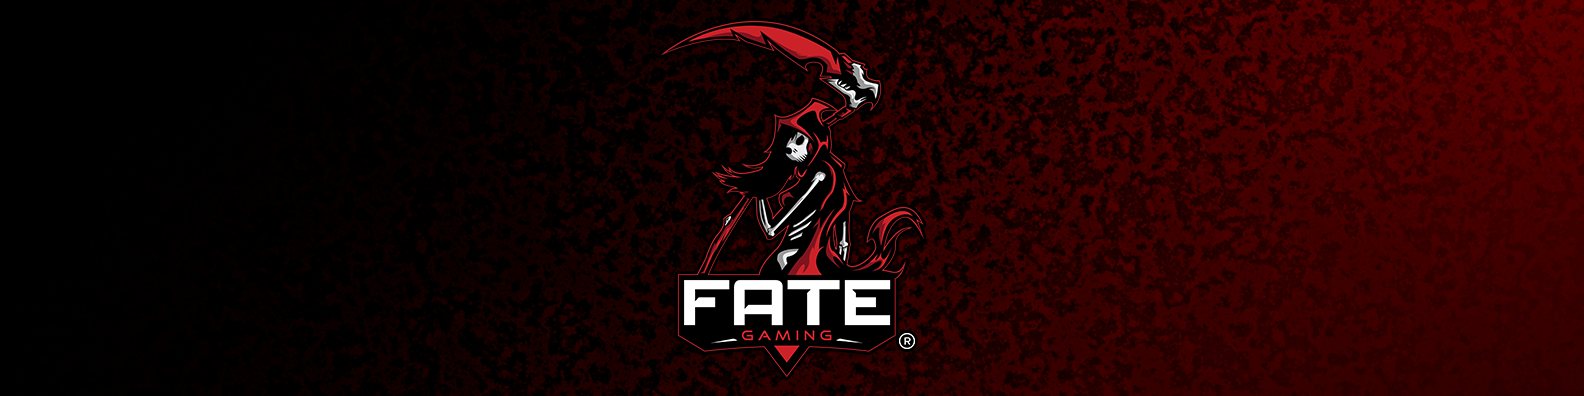 Fate Gaming LLC Banner